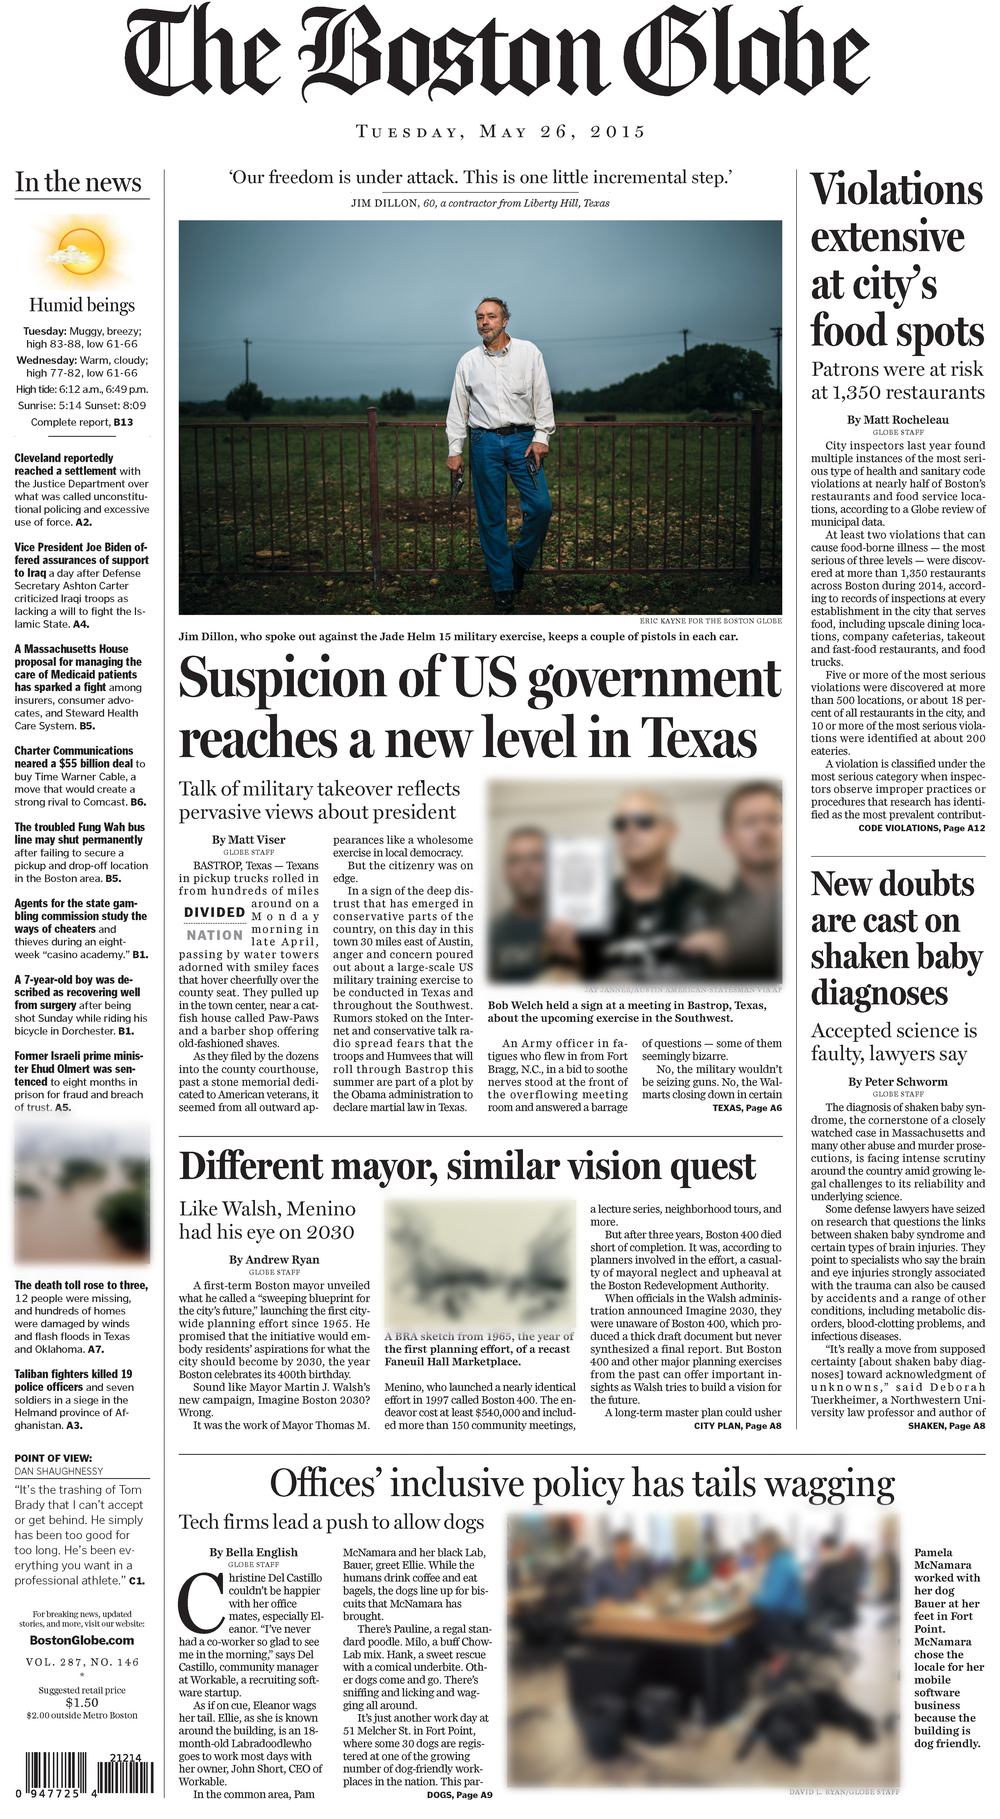 20150526-News-A-001-Main-BostonGlobe.jpg